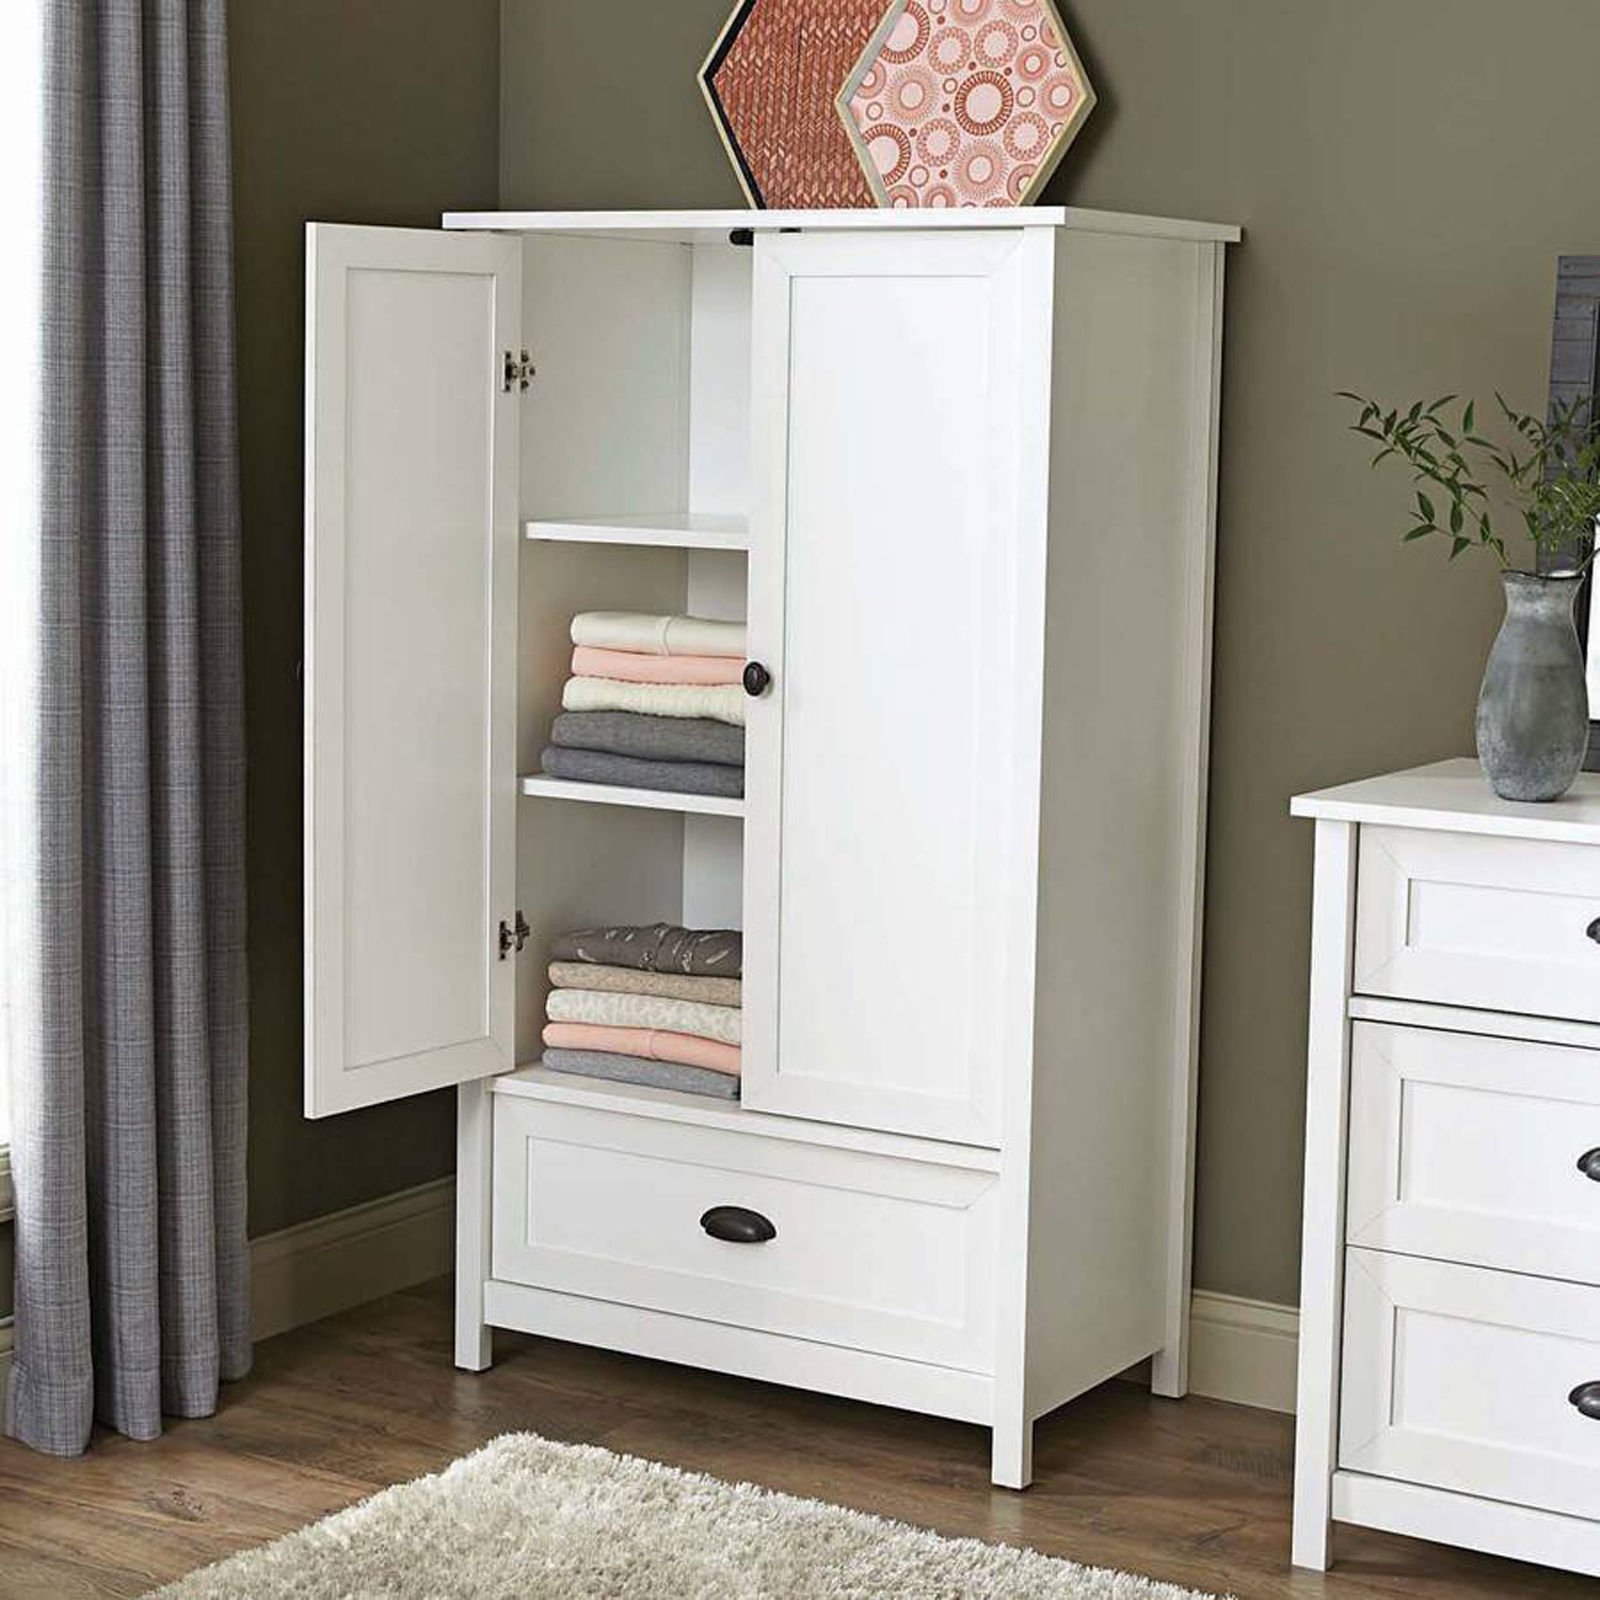 Bedroom Closets And Wardrobes: 25 Best Ideas White Wardrobe Armoire